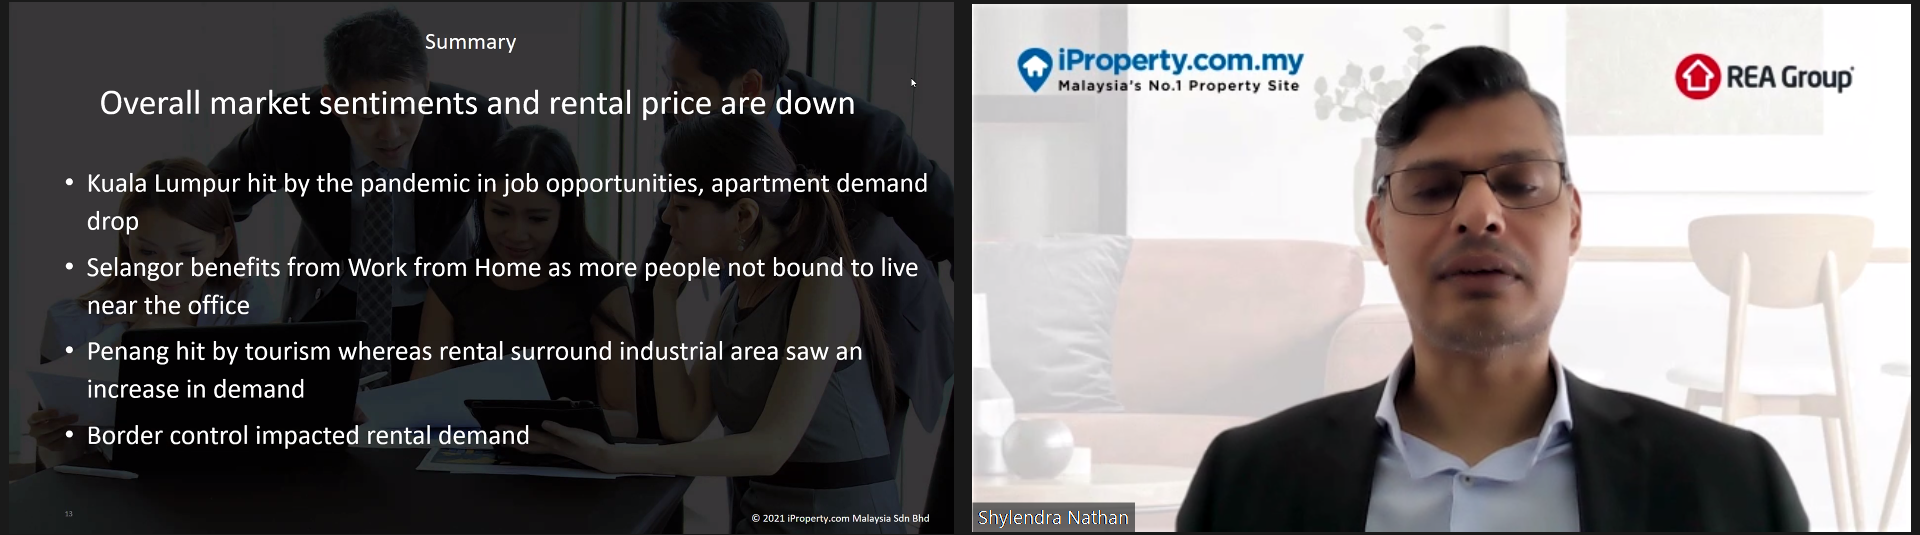 Property Renters to Continue Reaping Benefits in 2021 : iProperty.com.my